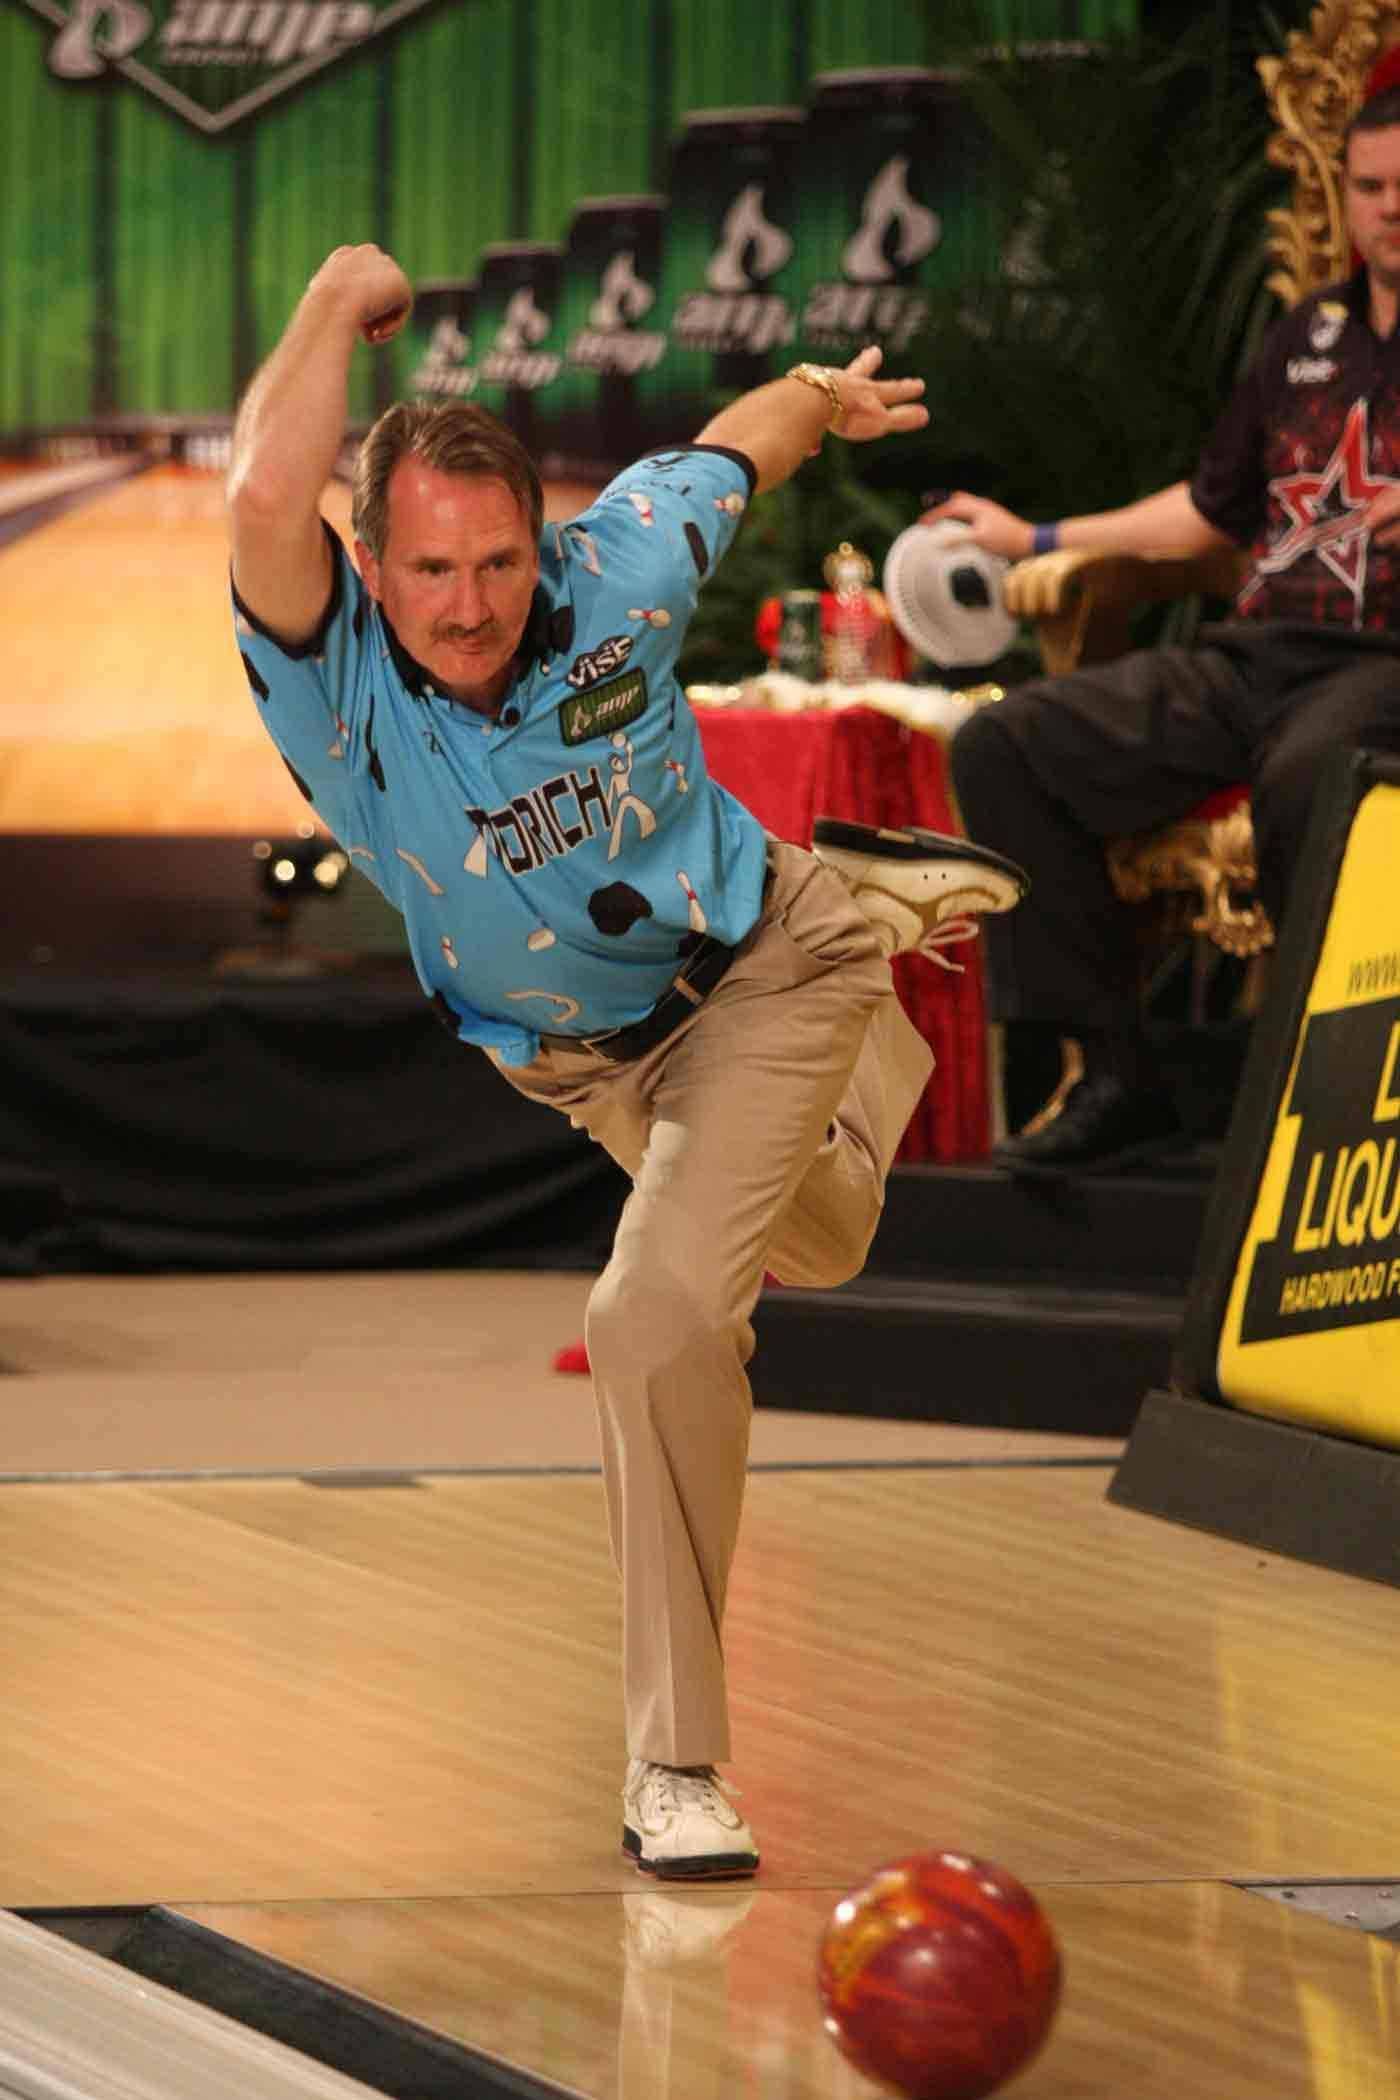 walter ray williams one of my favorite bowlers of all times